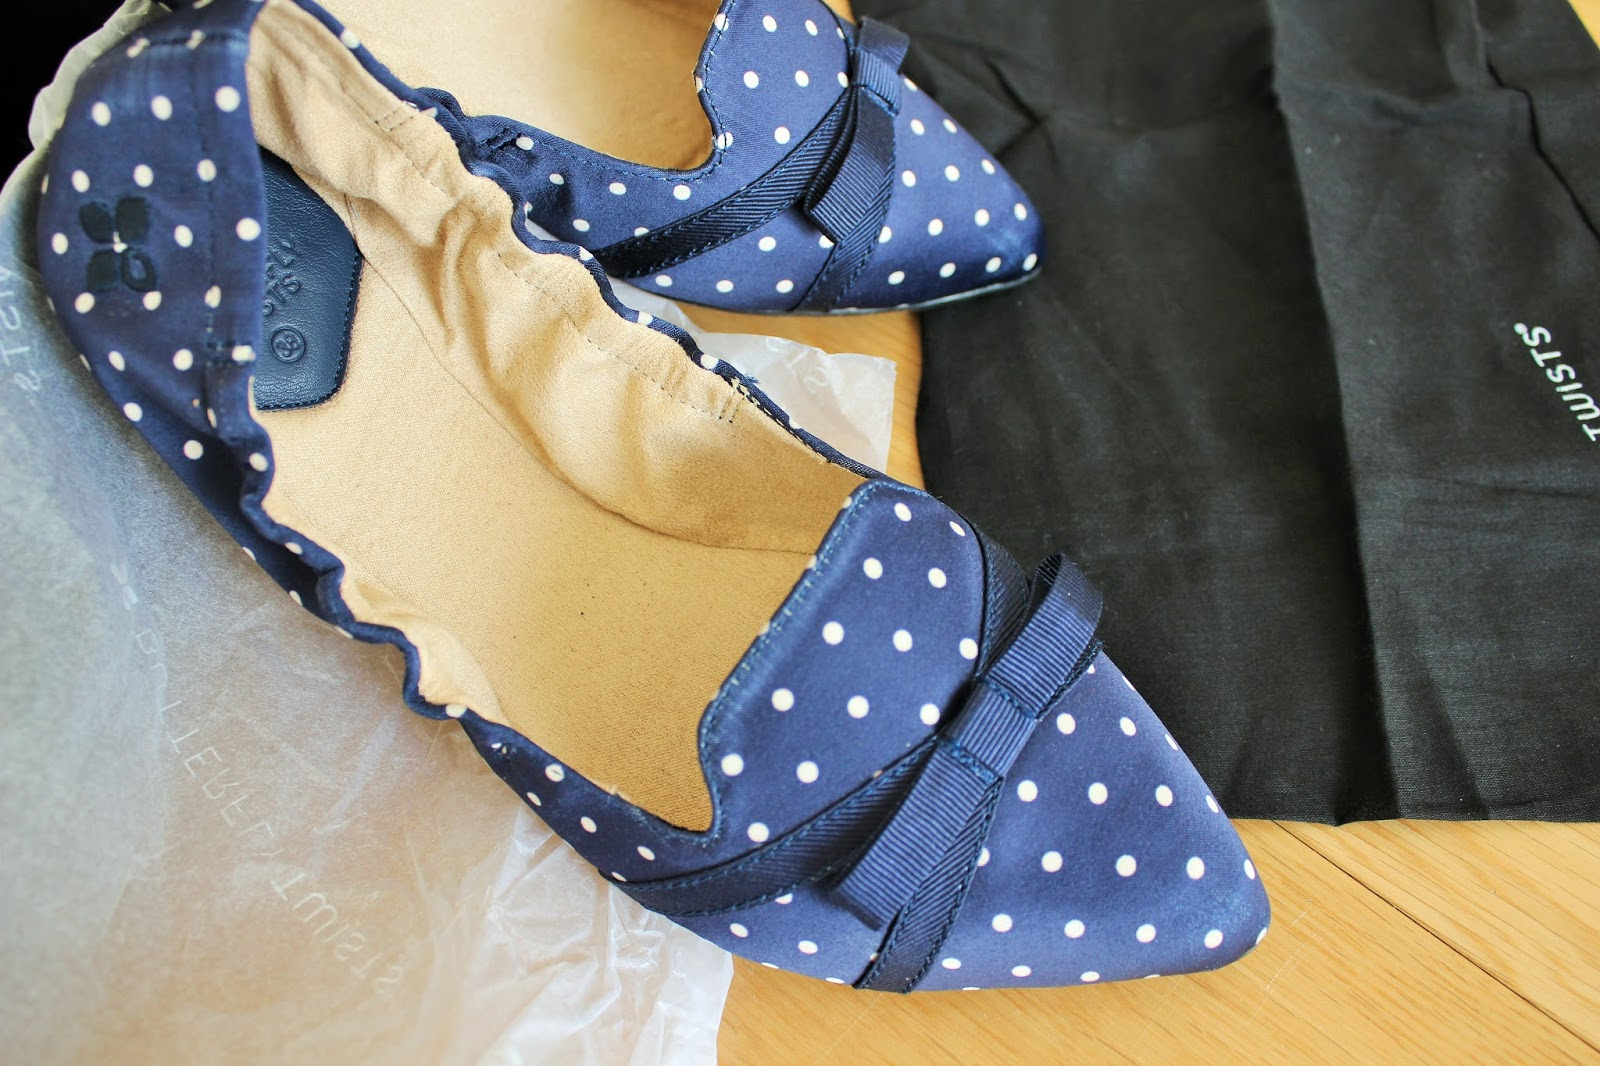 Foldable ballet flats from Butterfly Twists